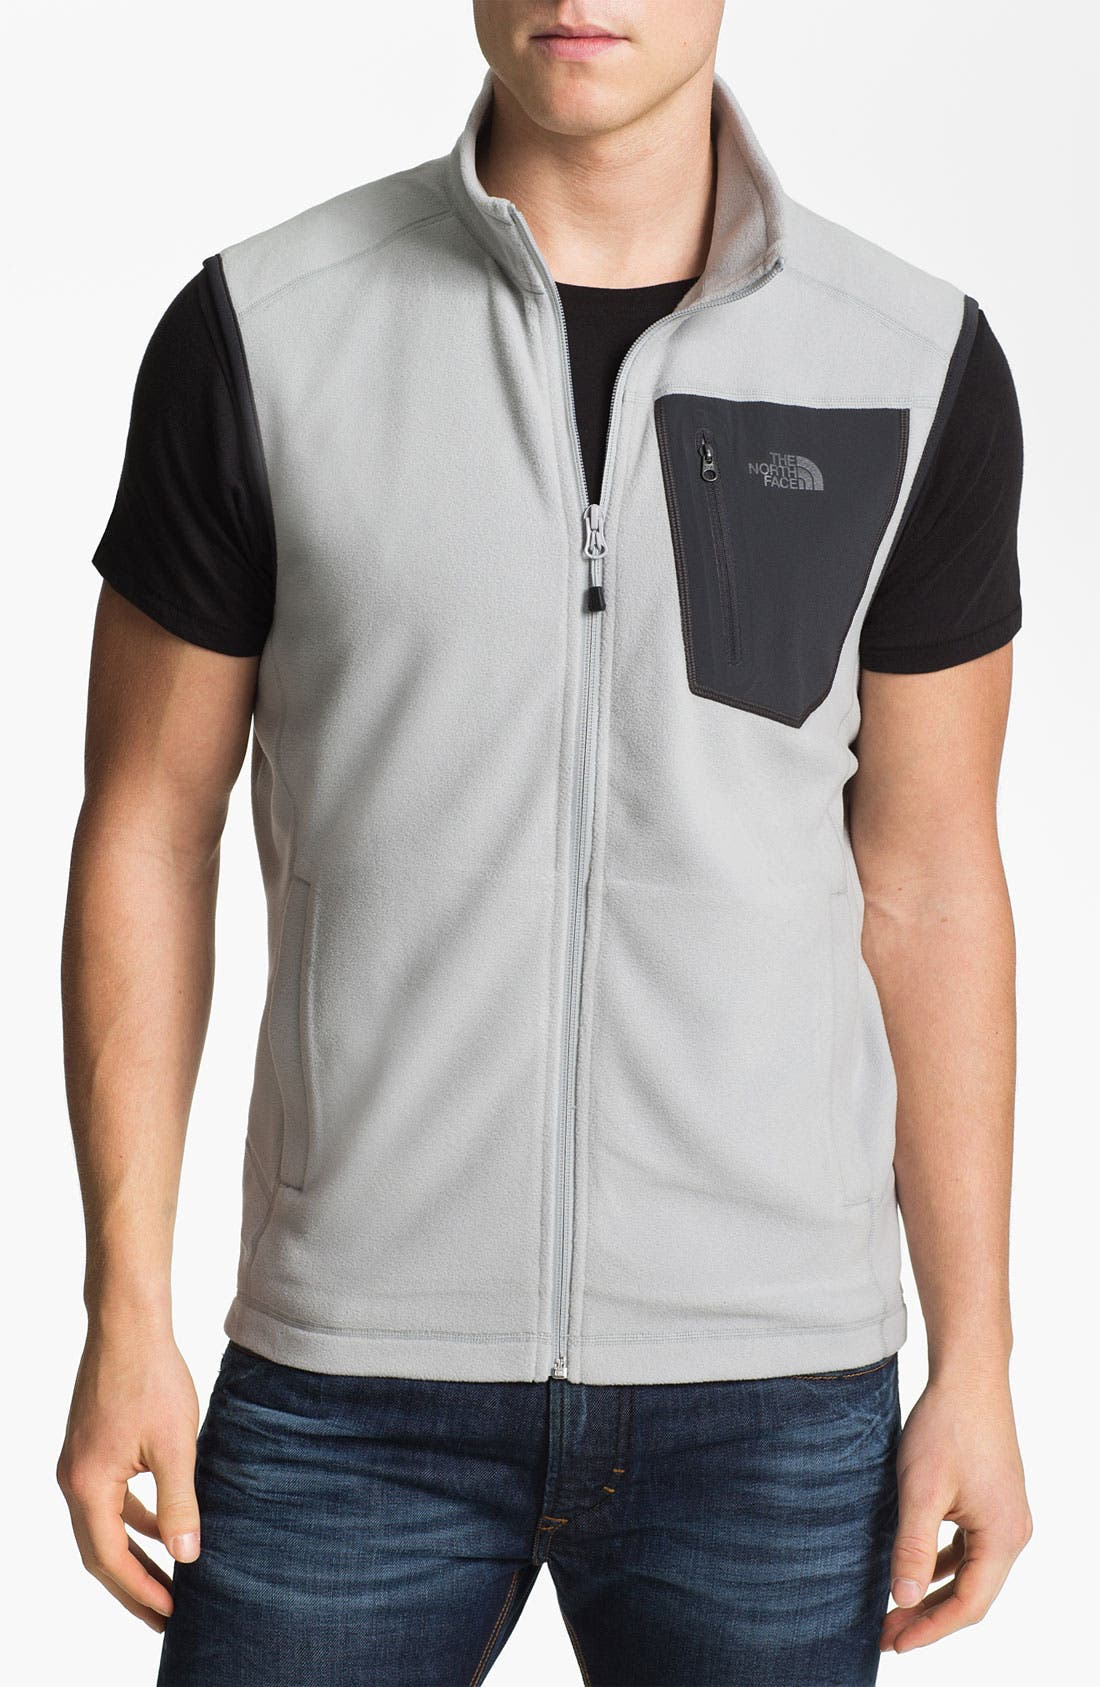 Alternate Image 1 Selected - The North Face 'TKA 100 Trinity Alps' Fleece Vest